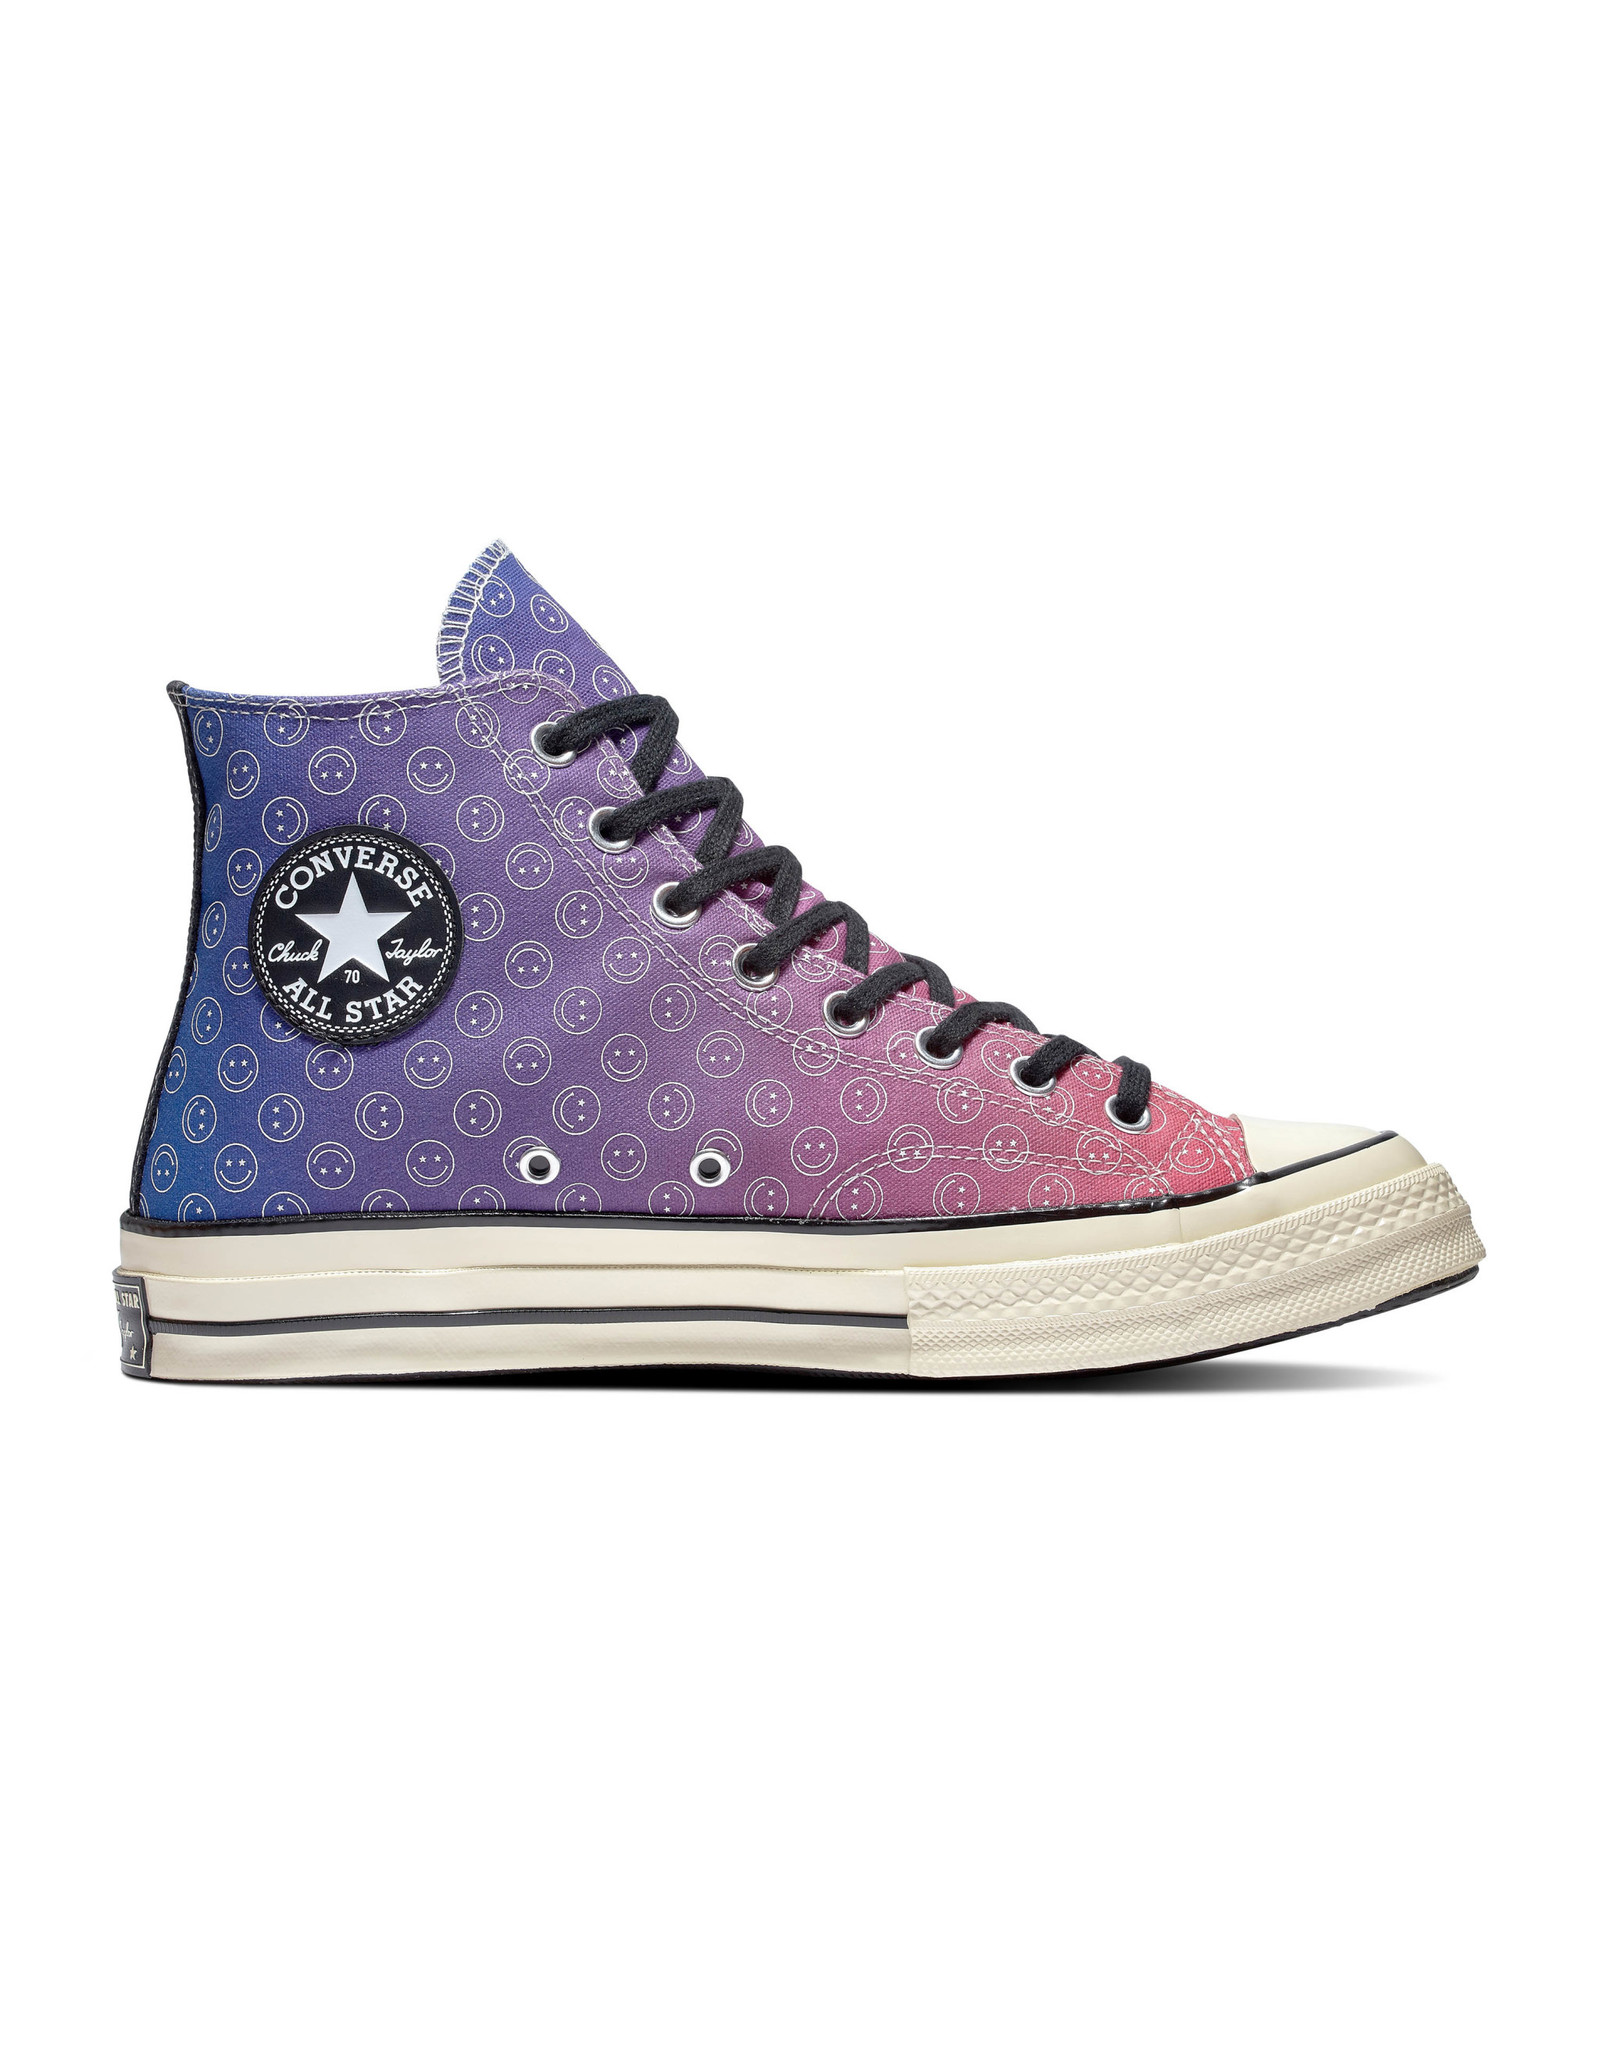 CONVERSE CHUCK 70 HI GAME ROYAL/CERISE PINK/EGRET C070GAME-167635C